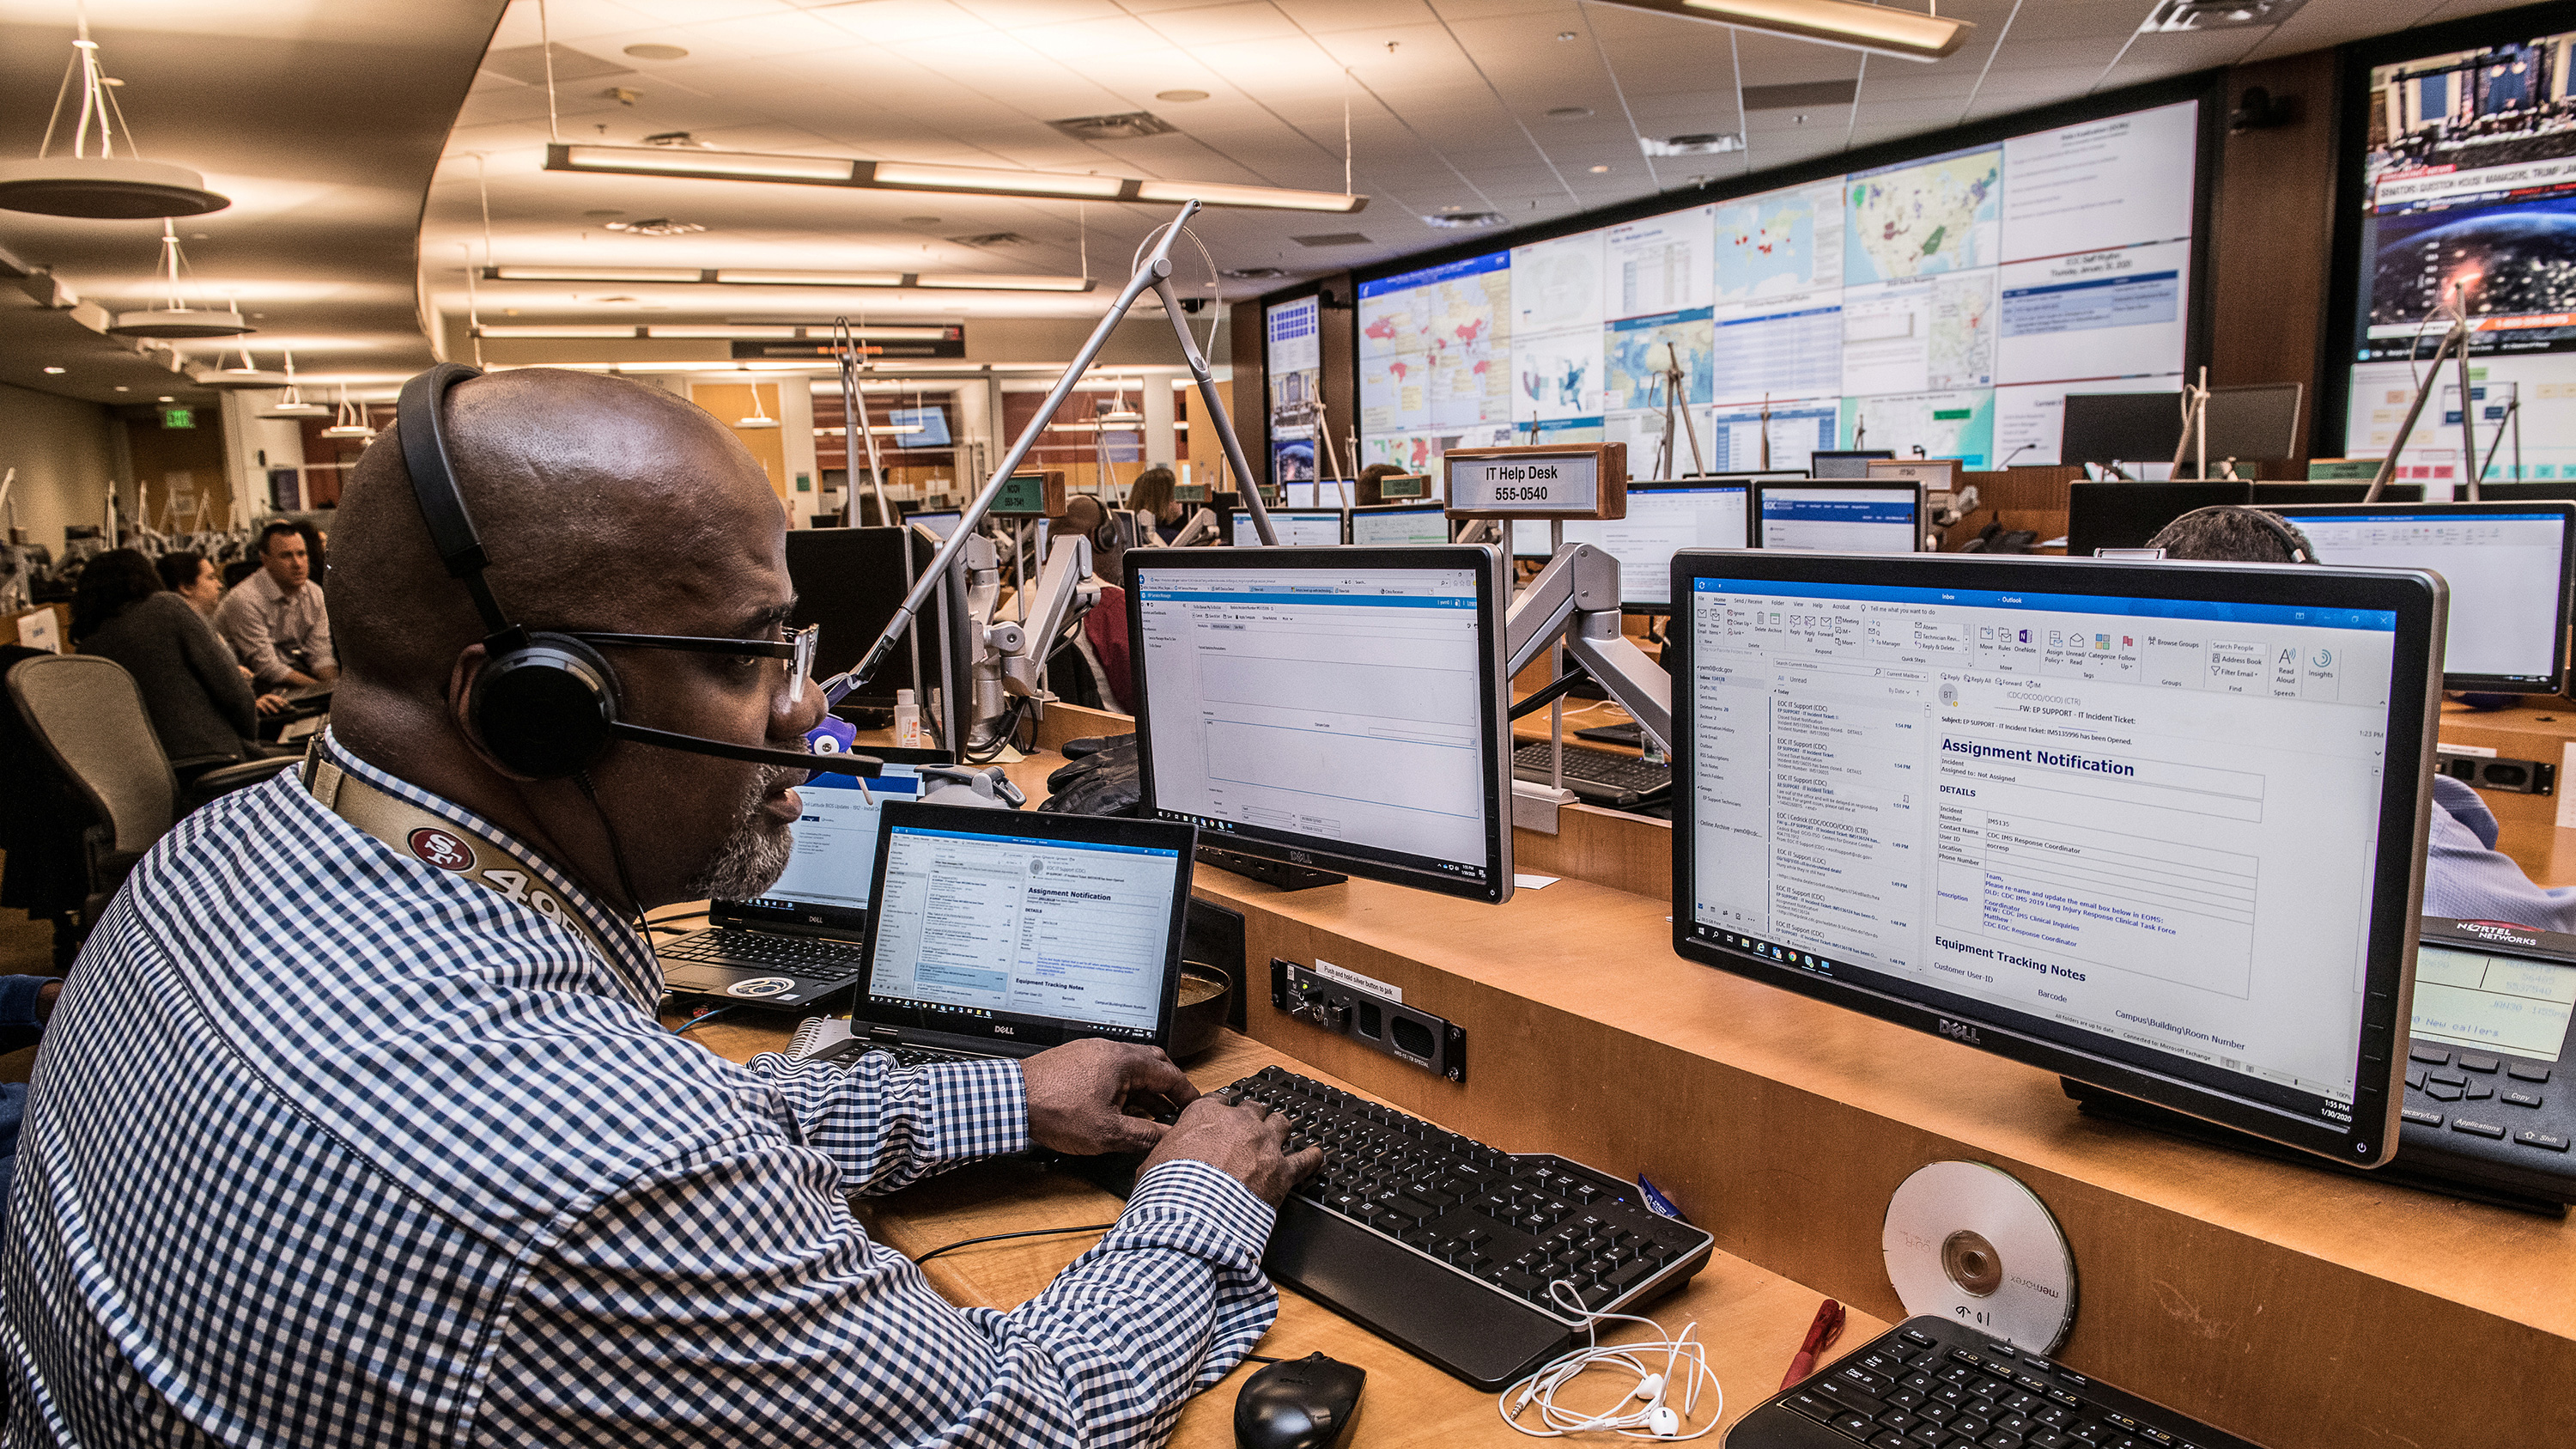 Picture shows a man in a large operations room with numerous huge display screens showing data.